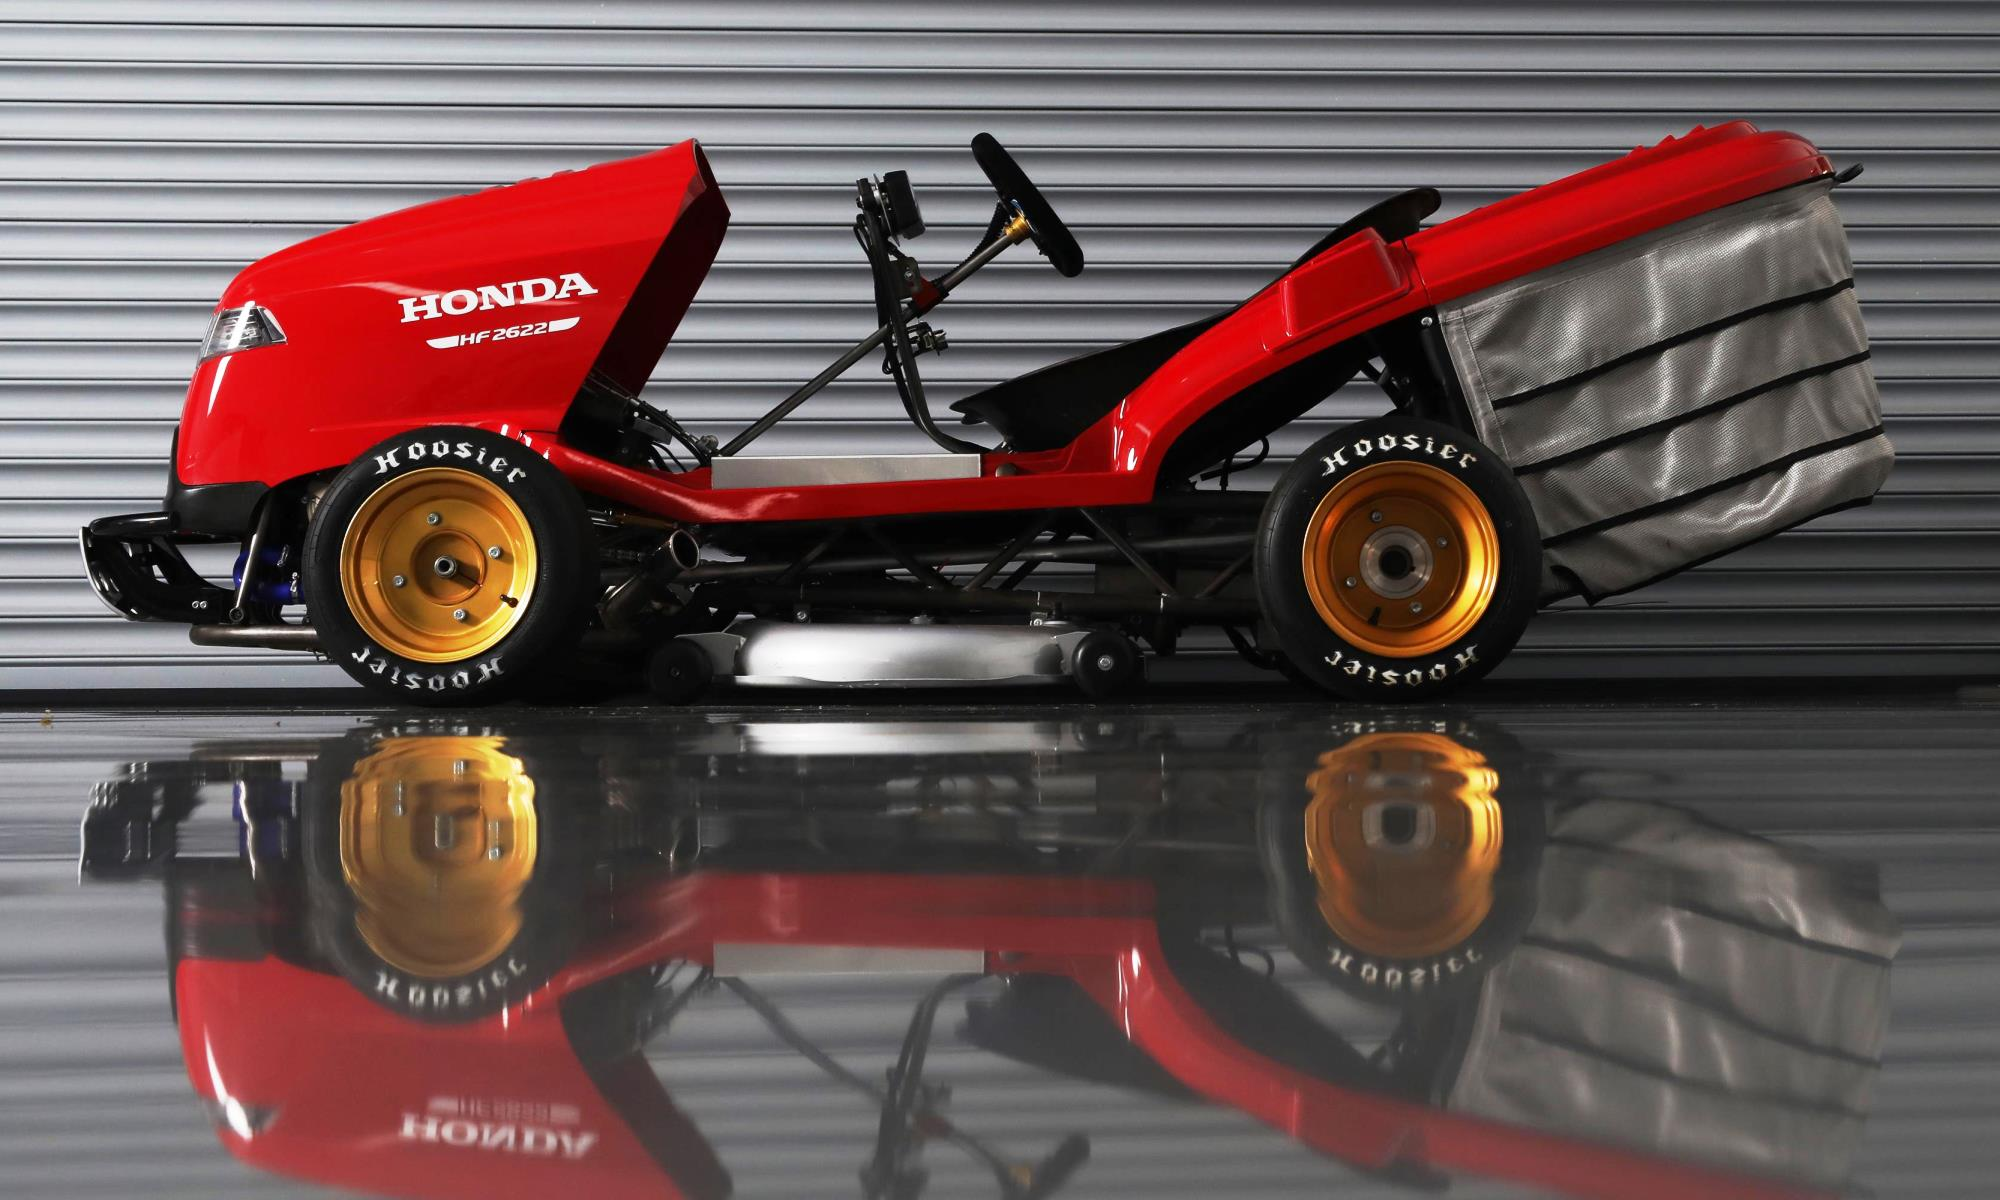 Honda Mean Mower V2 with grass box in place